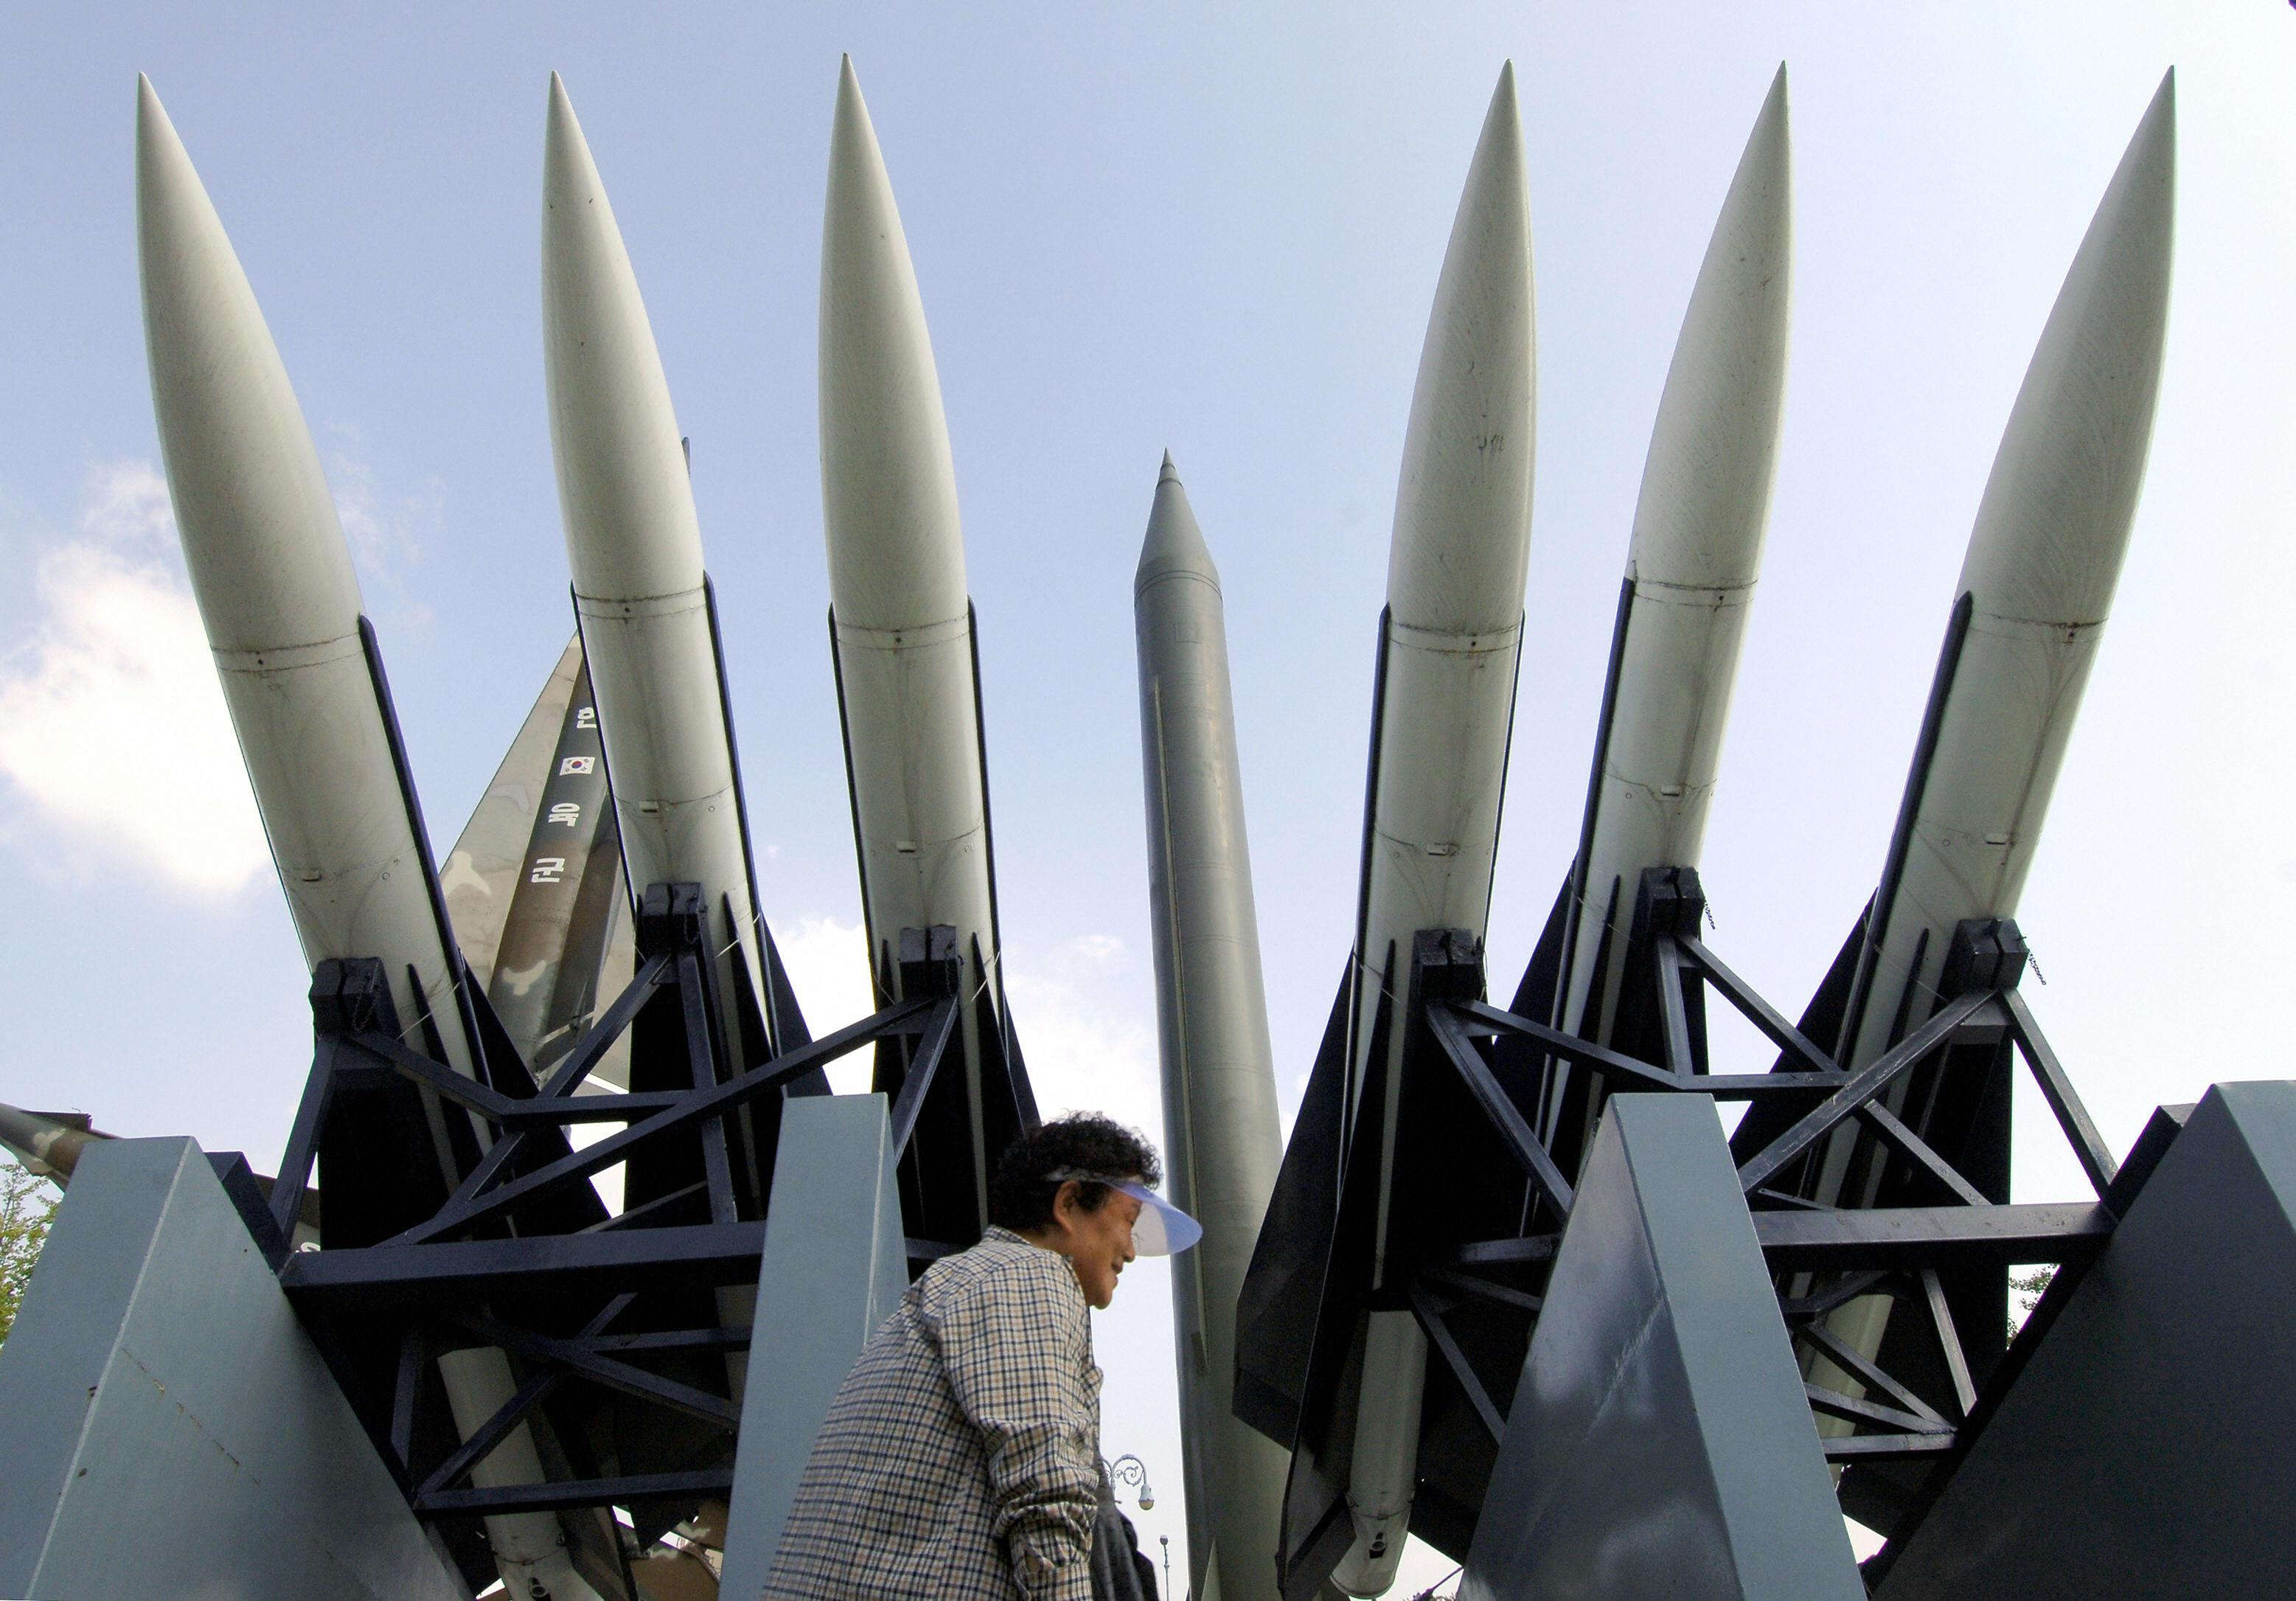 'Fewer but newer' nuclear arms in the world, says report